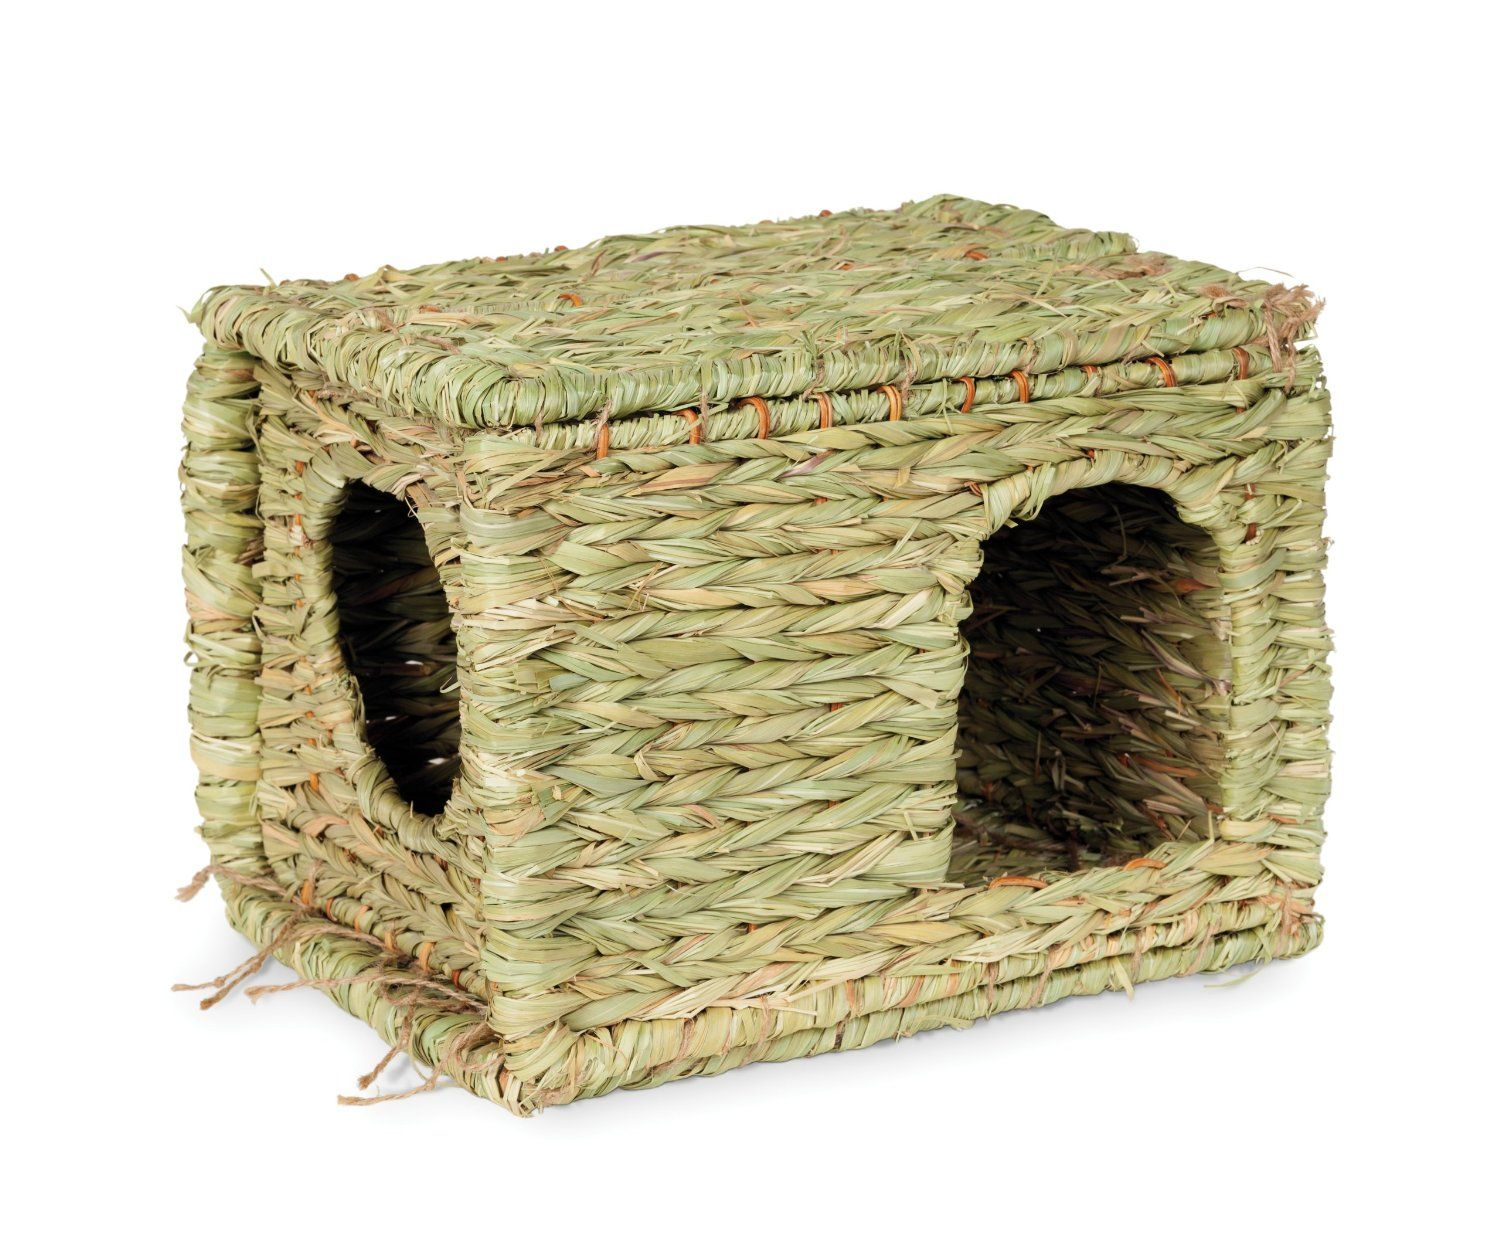 Grass Couch Amazoncom Prevue Hendryx 1100 Natures Hideaway Grass Couch Toy